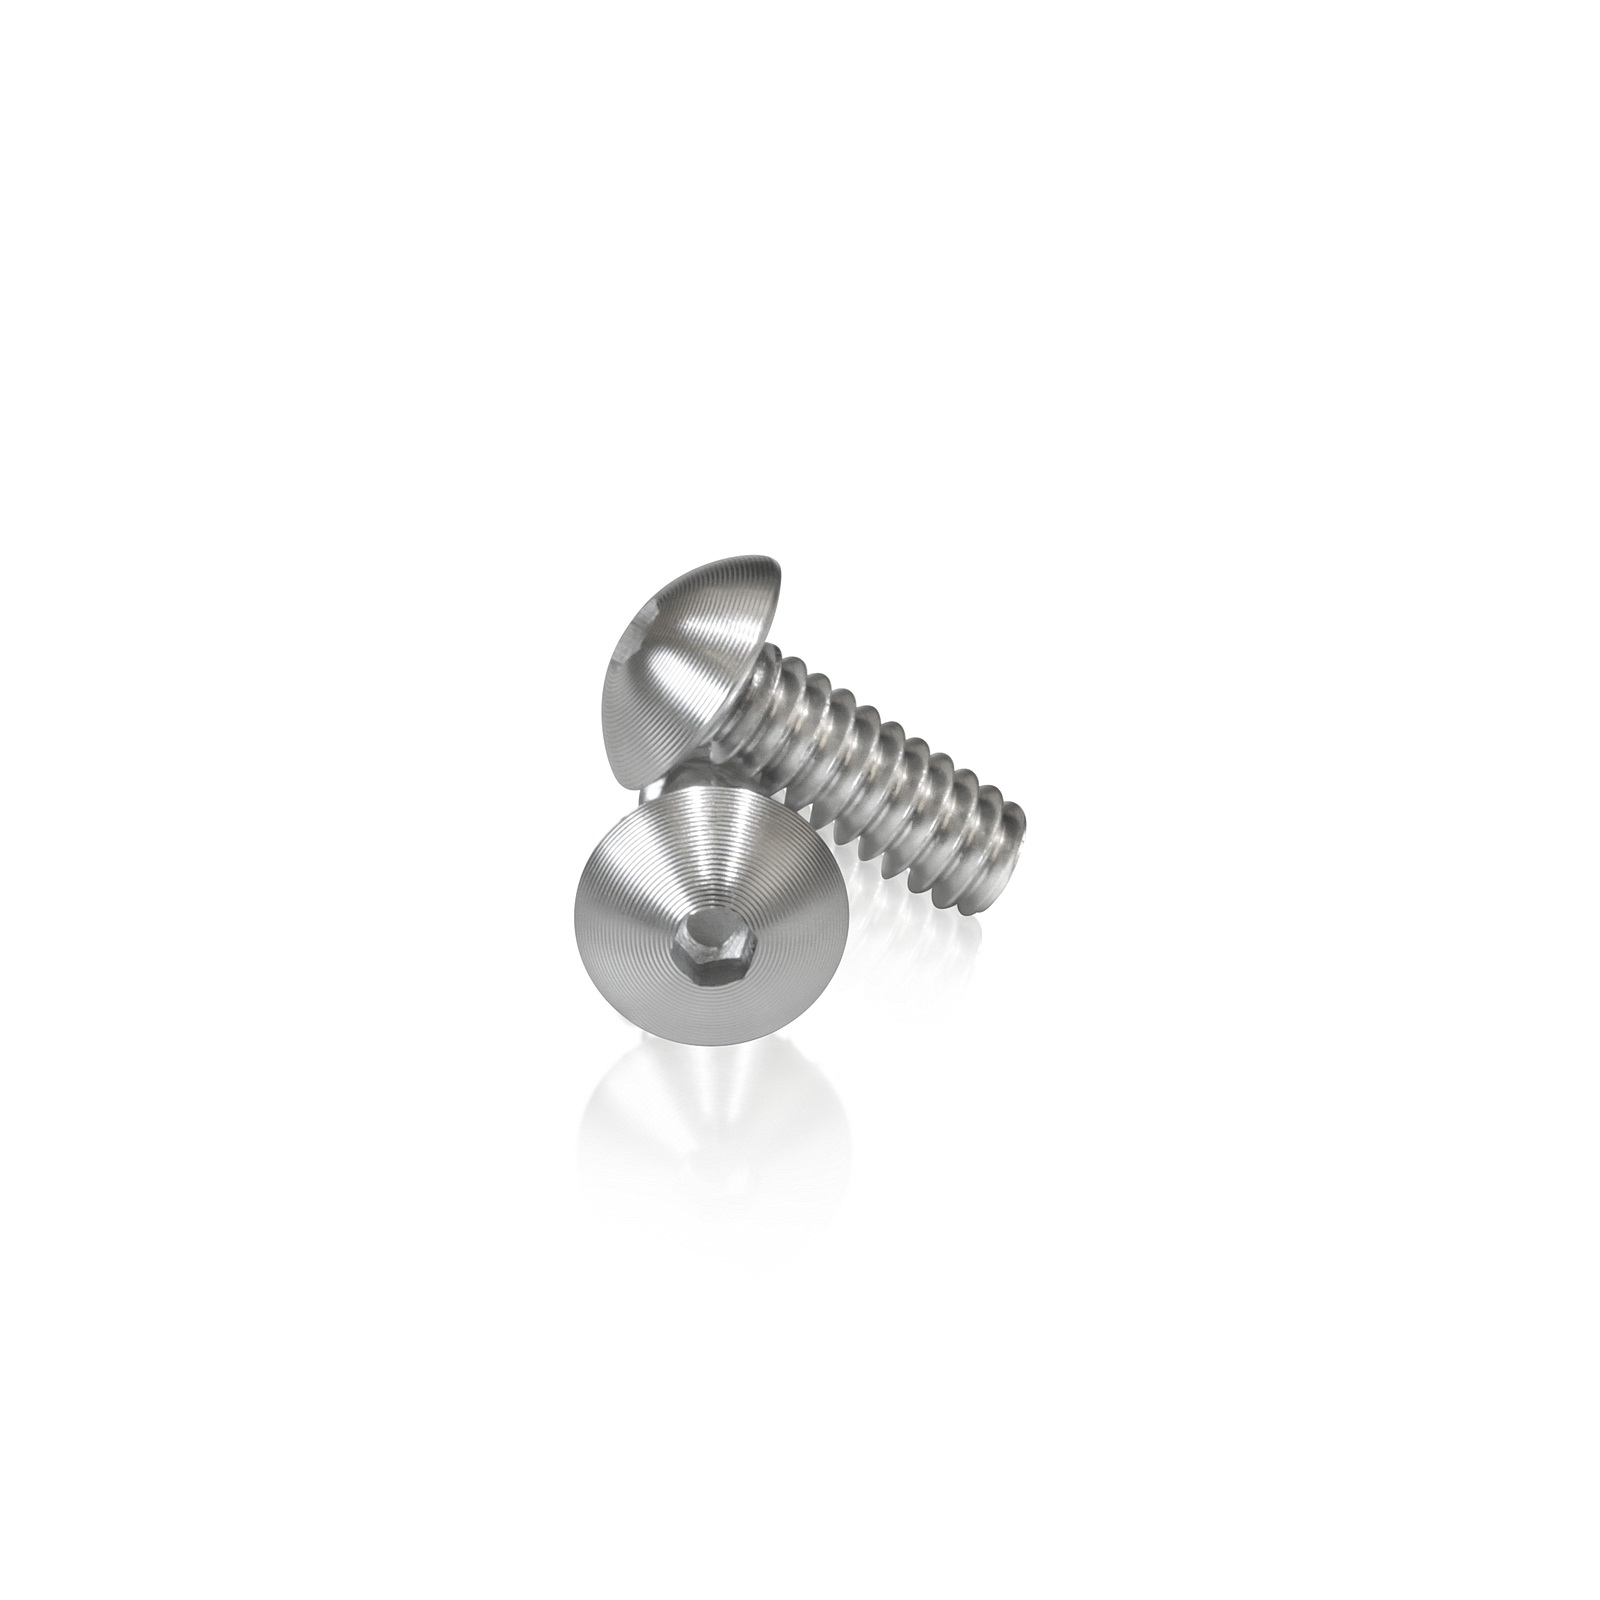 Low Profile Clear Anodized Aluminum Bolt 10-24 Thread, Length 1/2'', 3/32'' Hex Broach